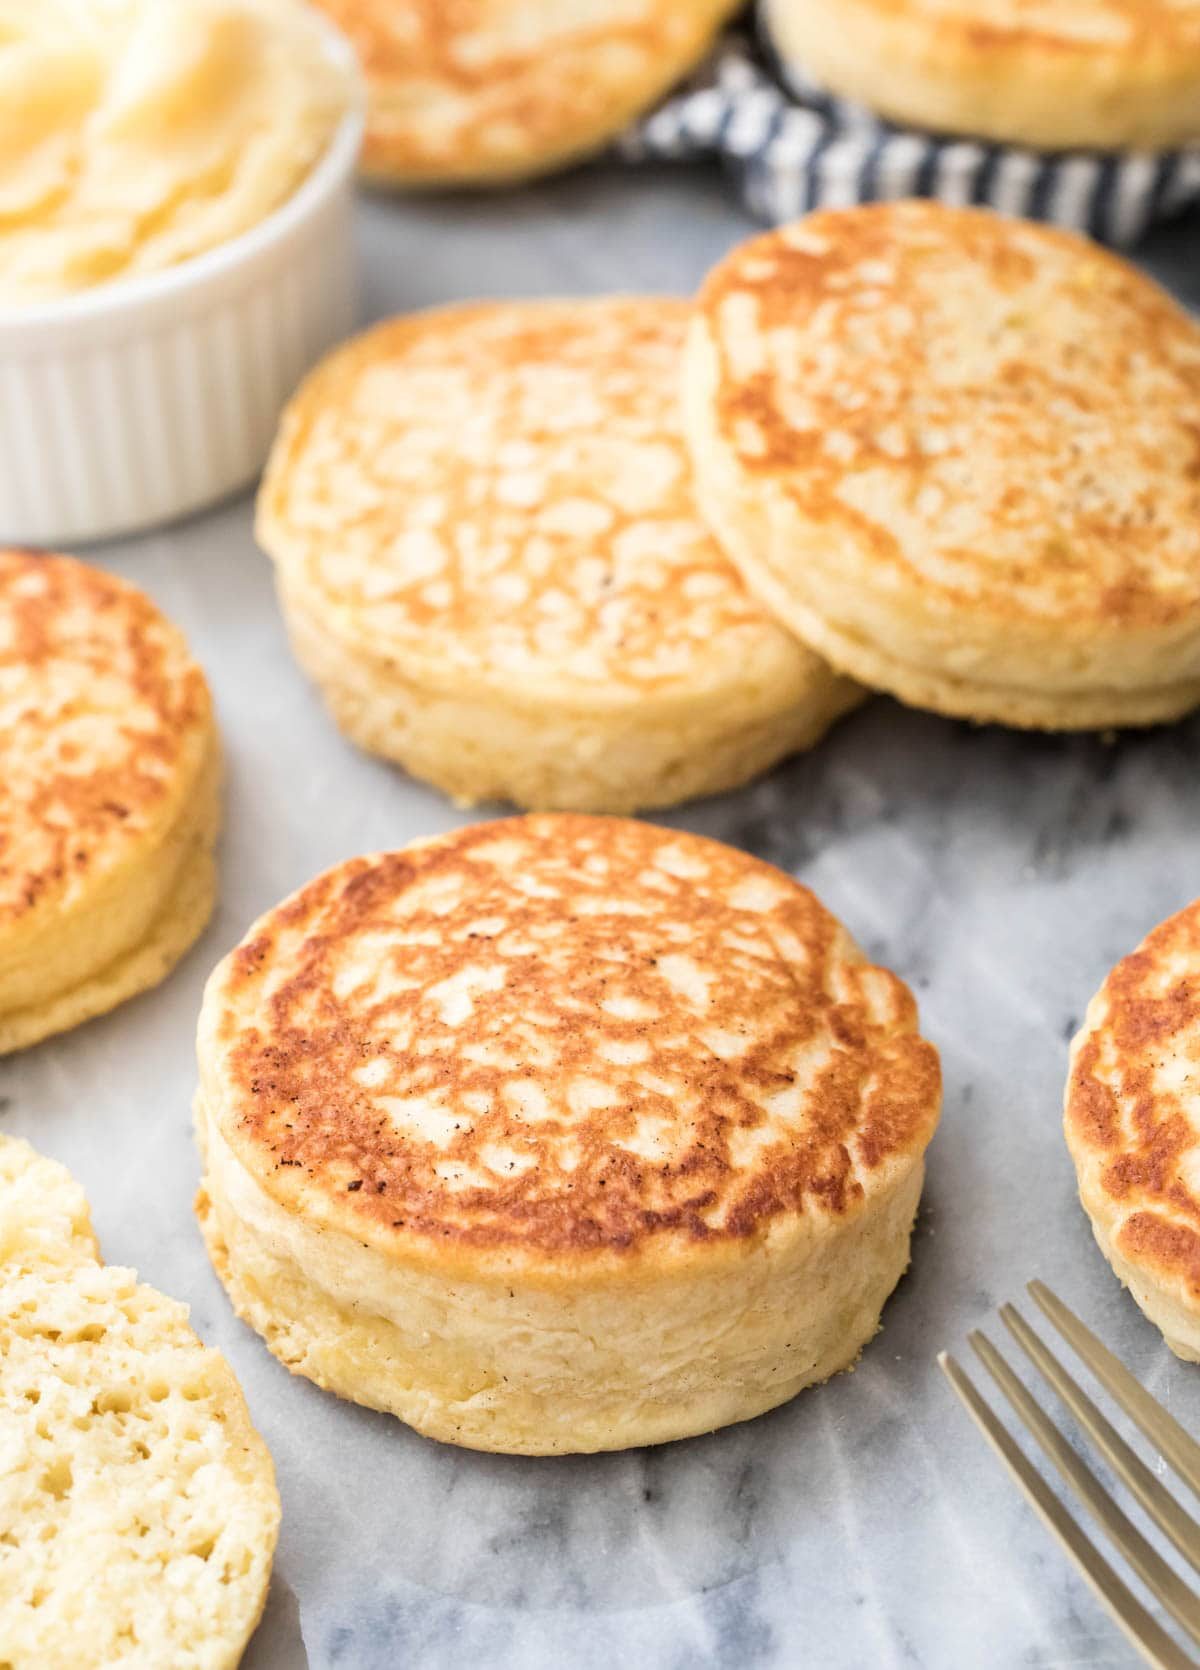 Closeup of English muffin